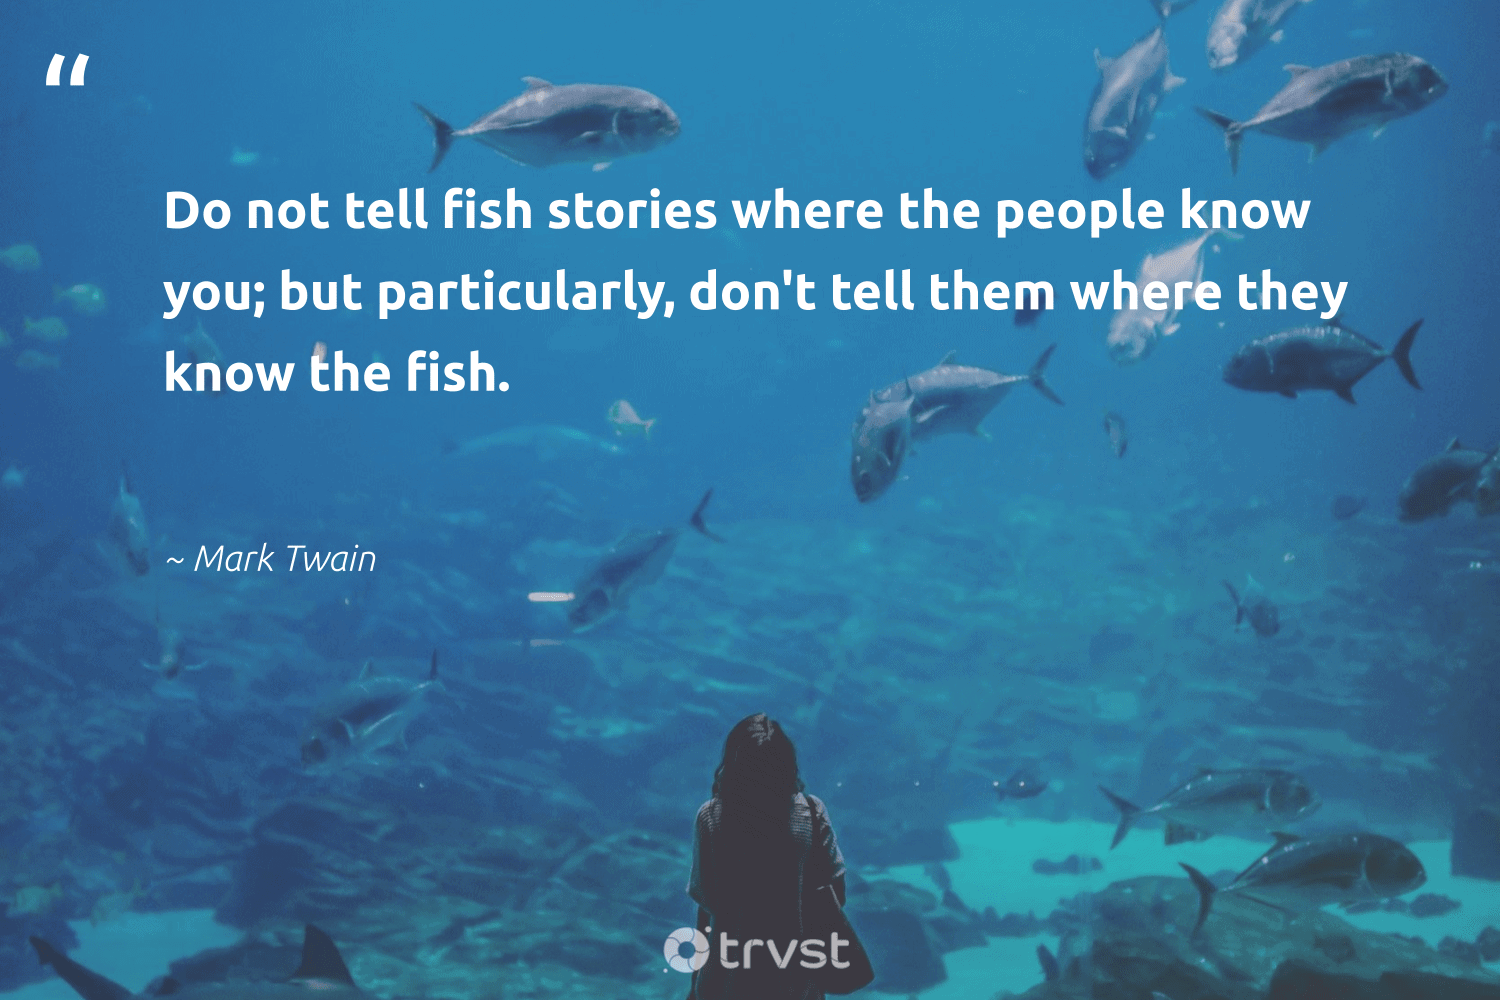 """""""Do not tell fish stories where the people know you; but particularly, don't tell them where they know the fish.""""  - Mark Twain #trvst #quotes #fish #oceans #socialchange #sustainability #bethechange #savetheoceans #ecoconscious #nature #takeaction #protecttheoceans"""